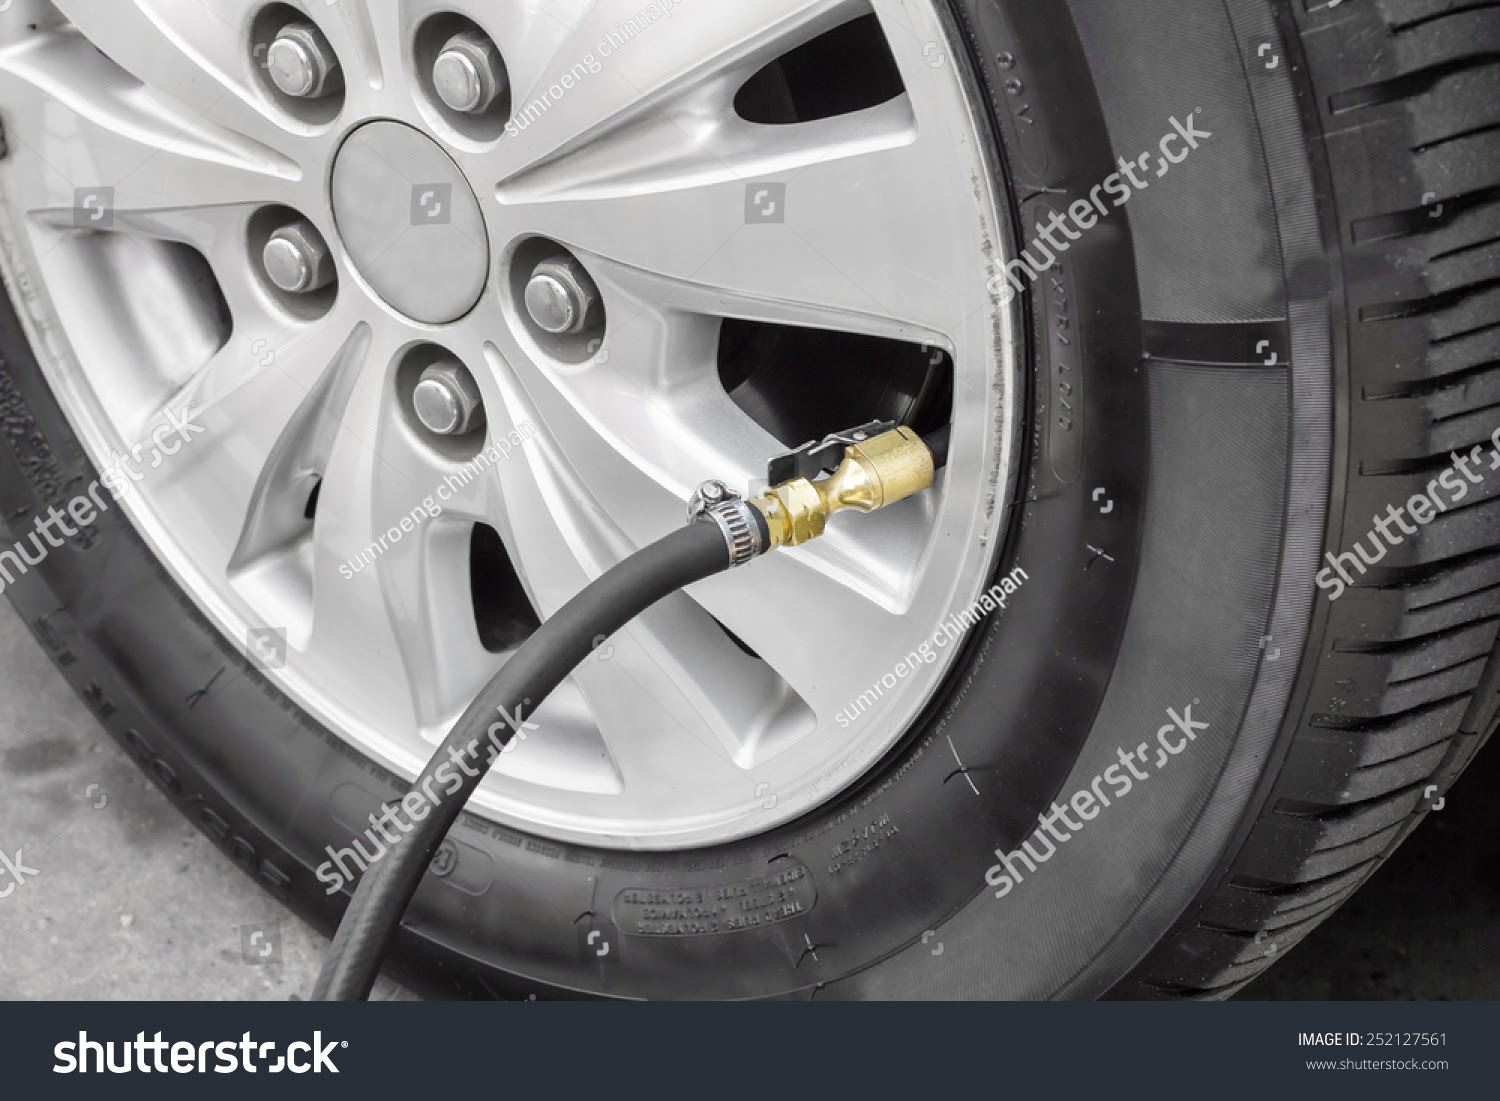 Filling Air Into A Car Tire Stock Photo 252127561